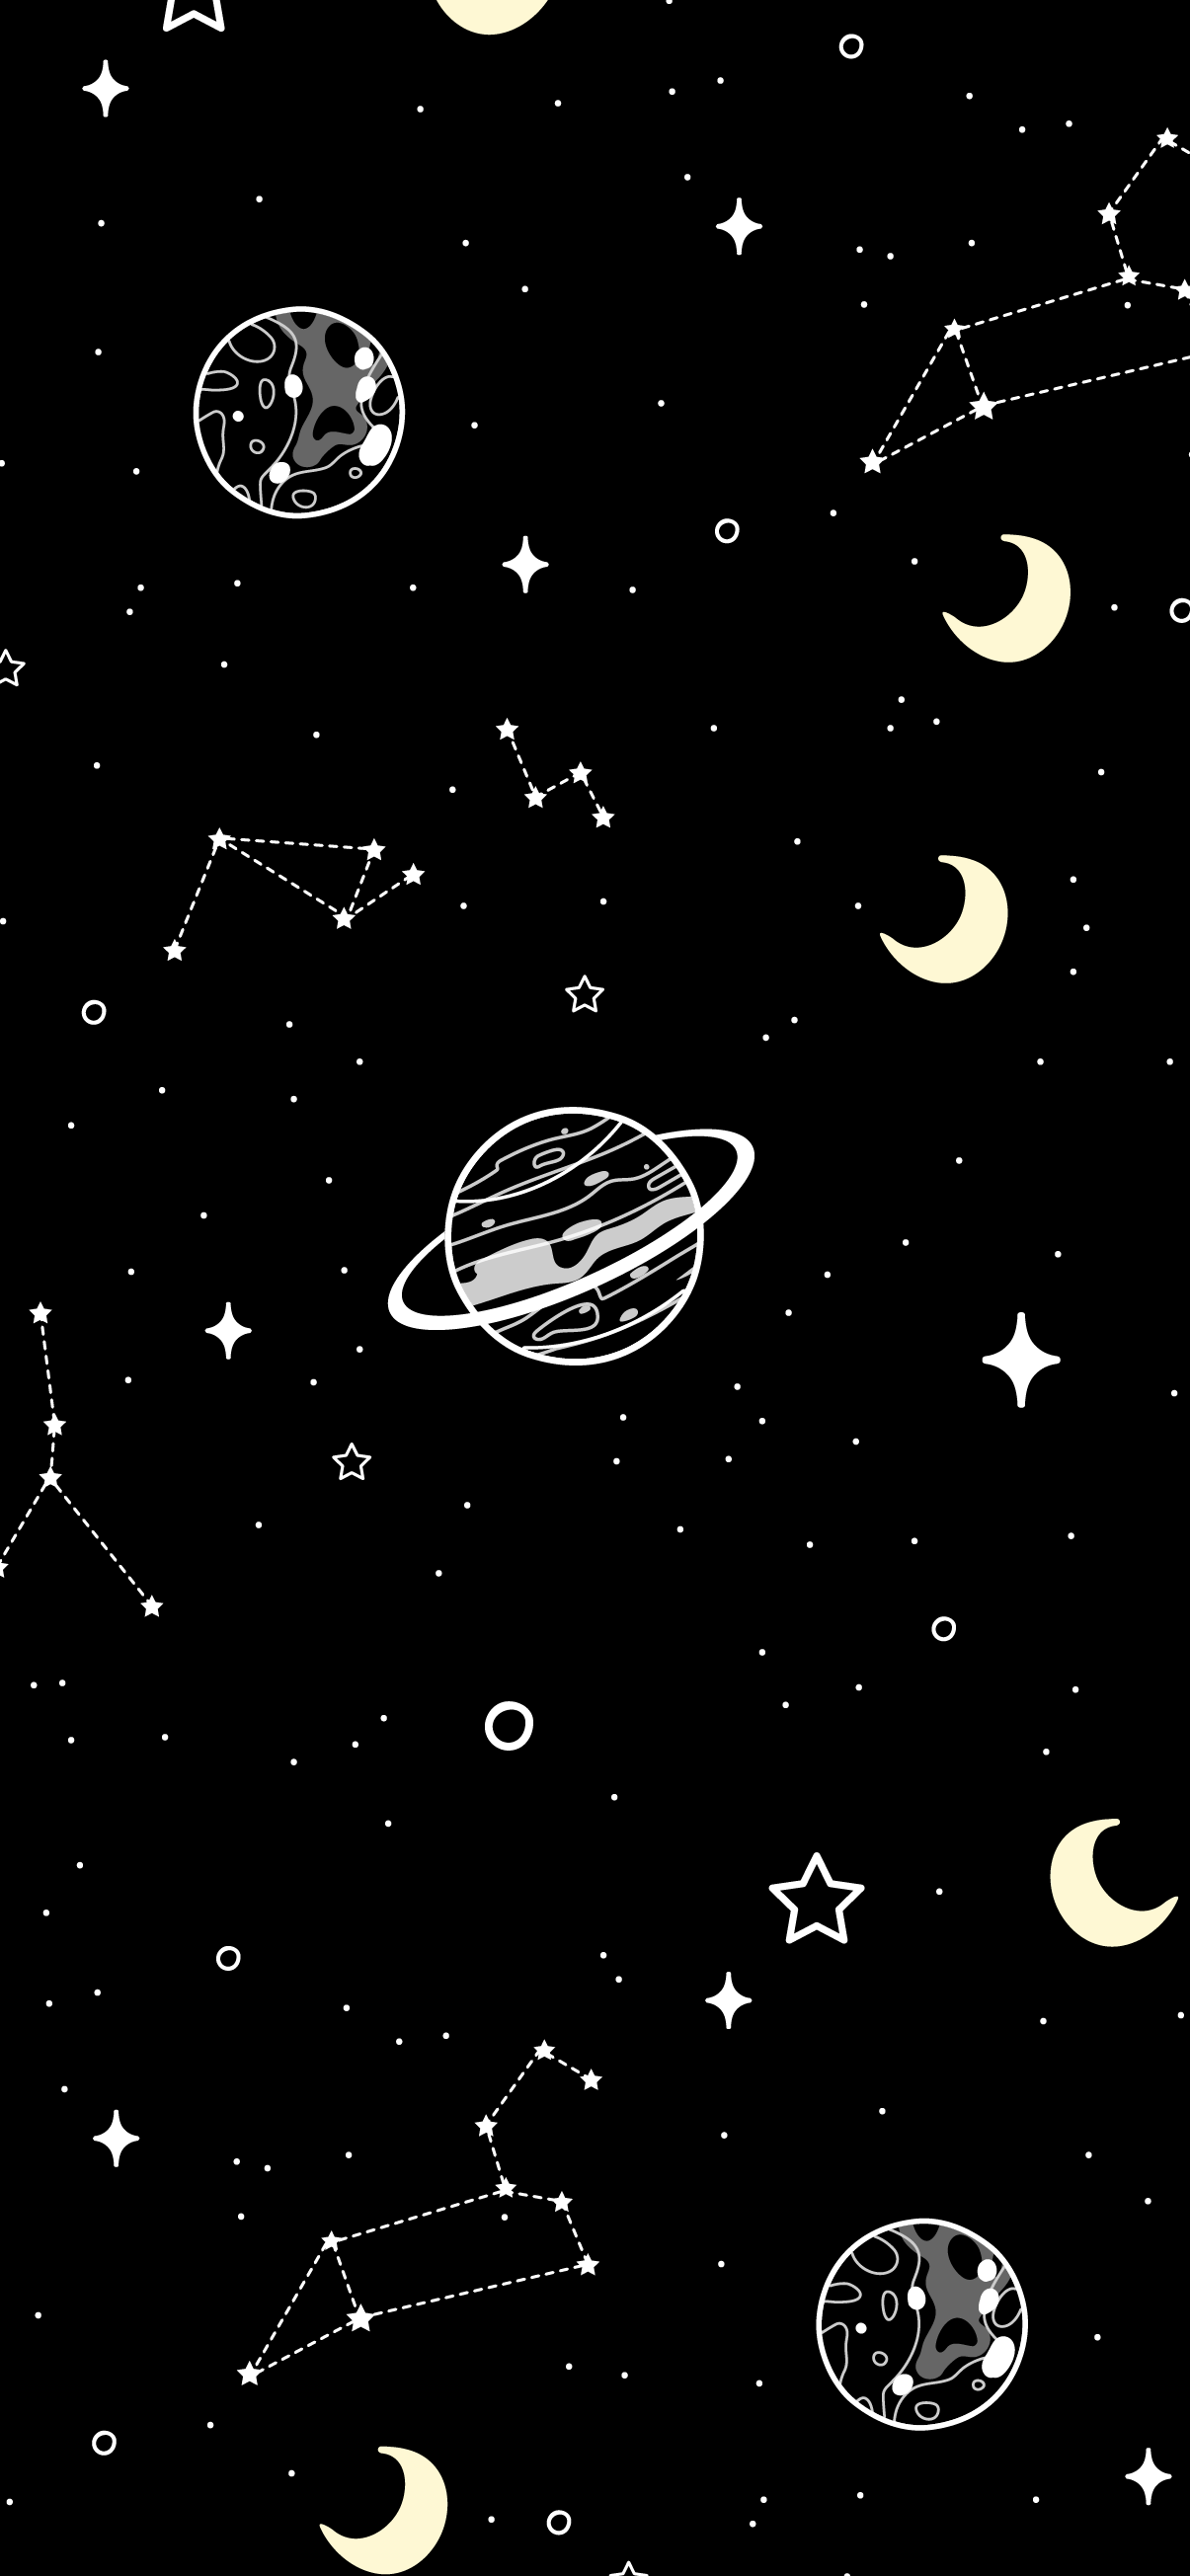 amoled galaxy black background wallpaper iphone 4k moon and planets